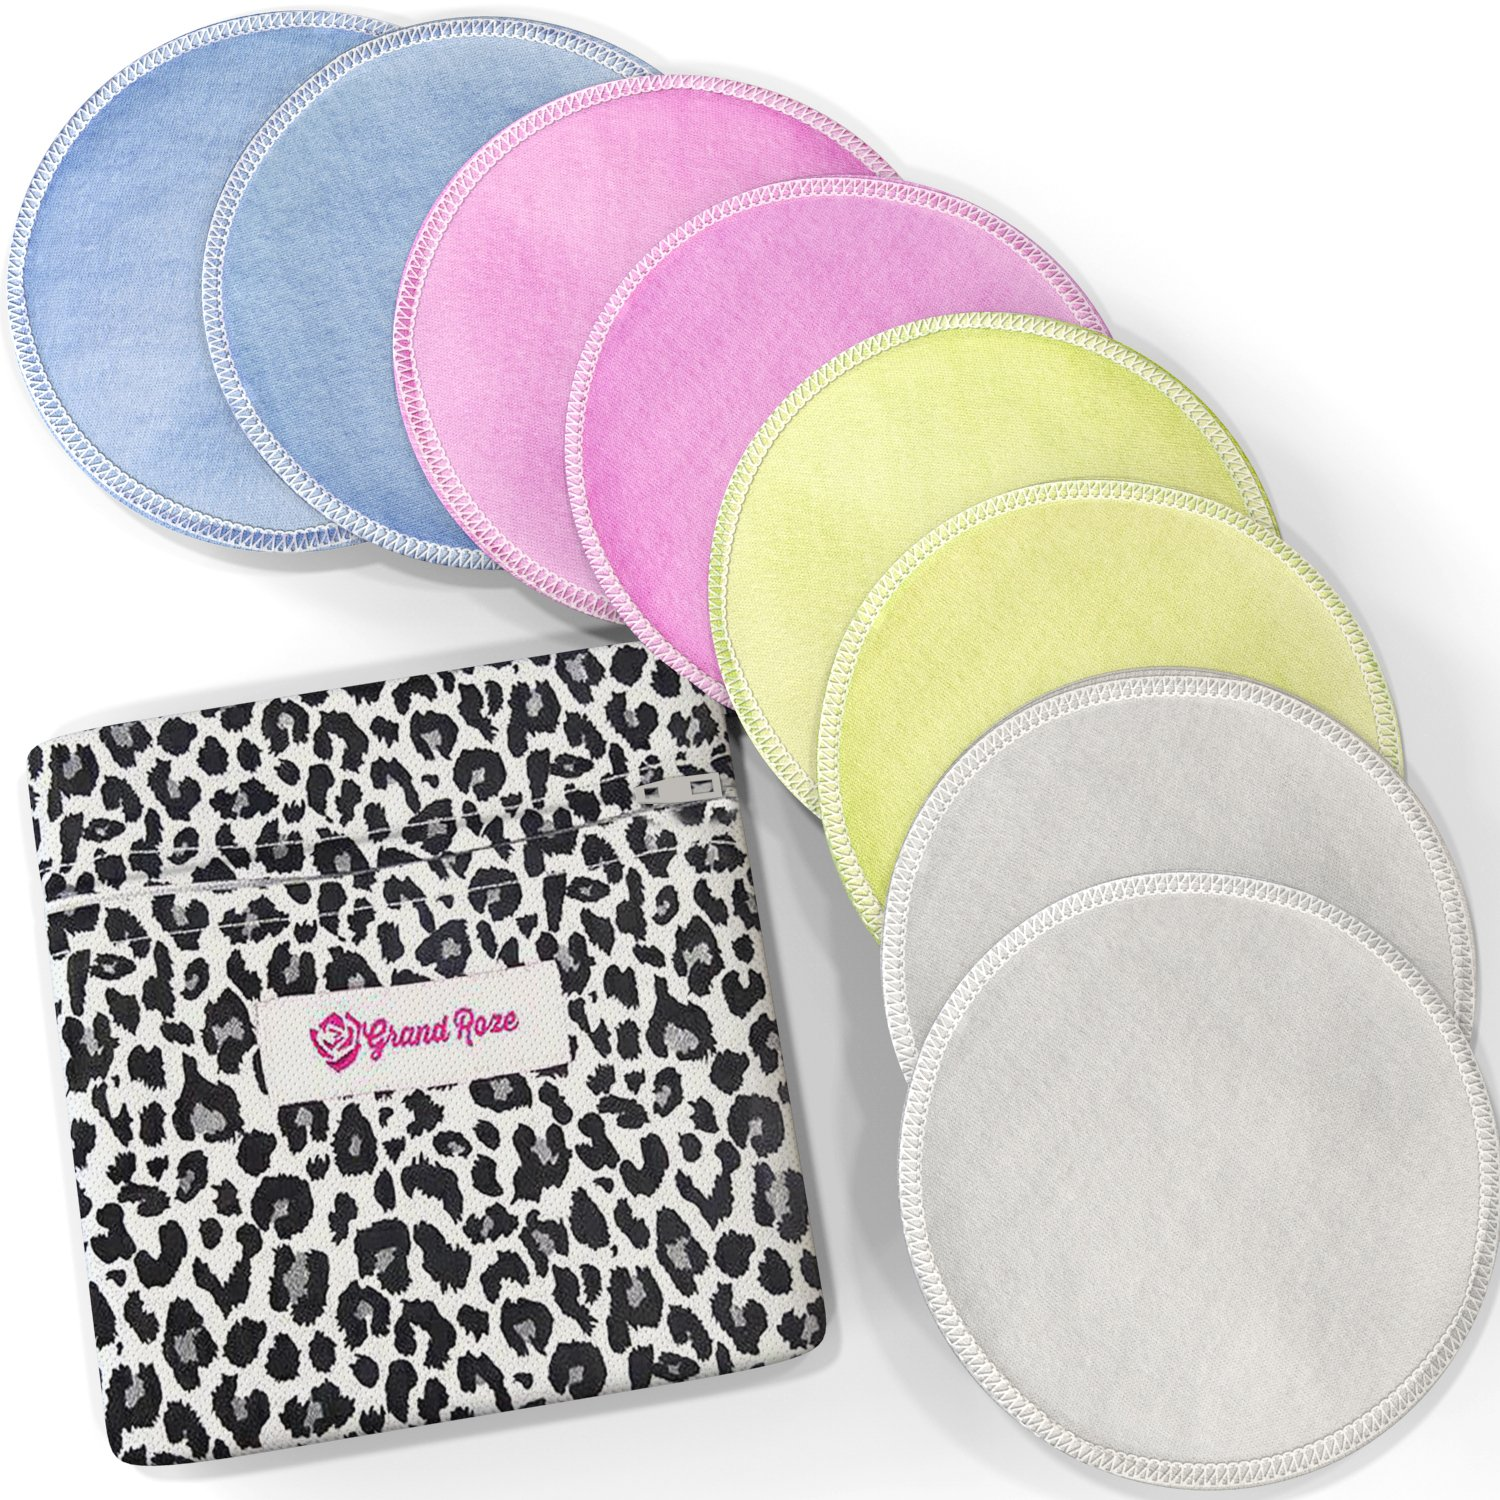 Softest Cotton Washable Nursing Pads - Reusable for Breastfeeding Women - Natural Antibacterial, Non Toxic-Hypoallergenic, Eco-friendly Pads - Super Water Absorbent that Stops Leaking & Collects Milk